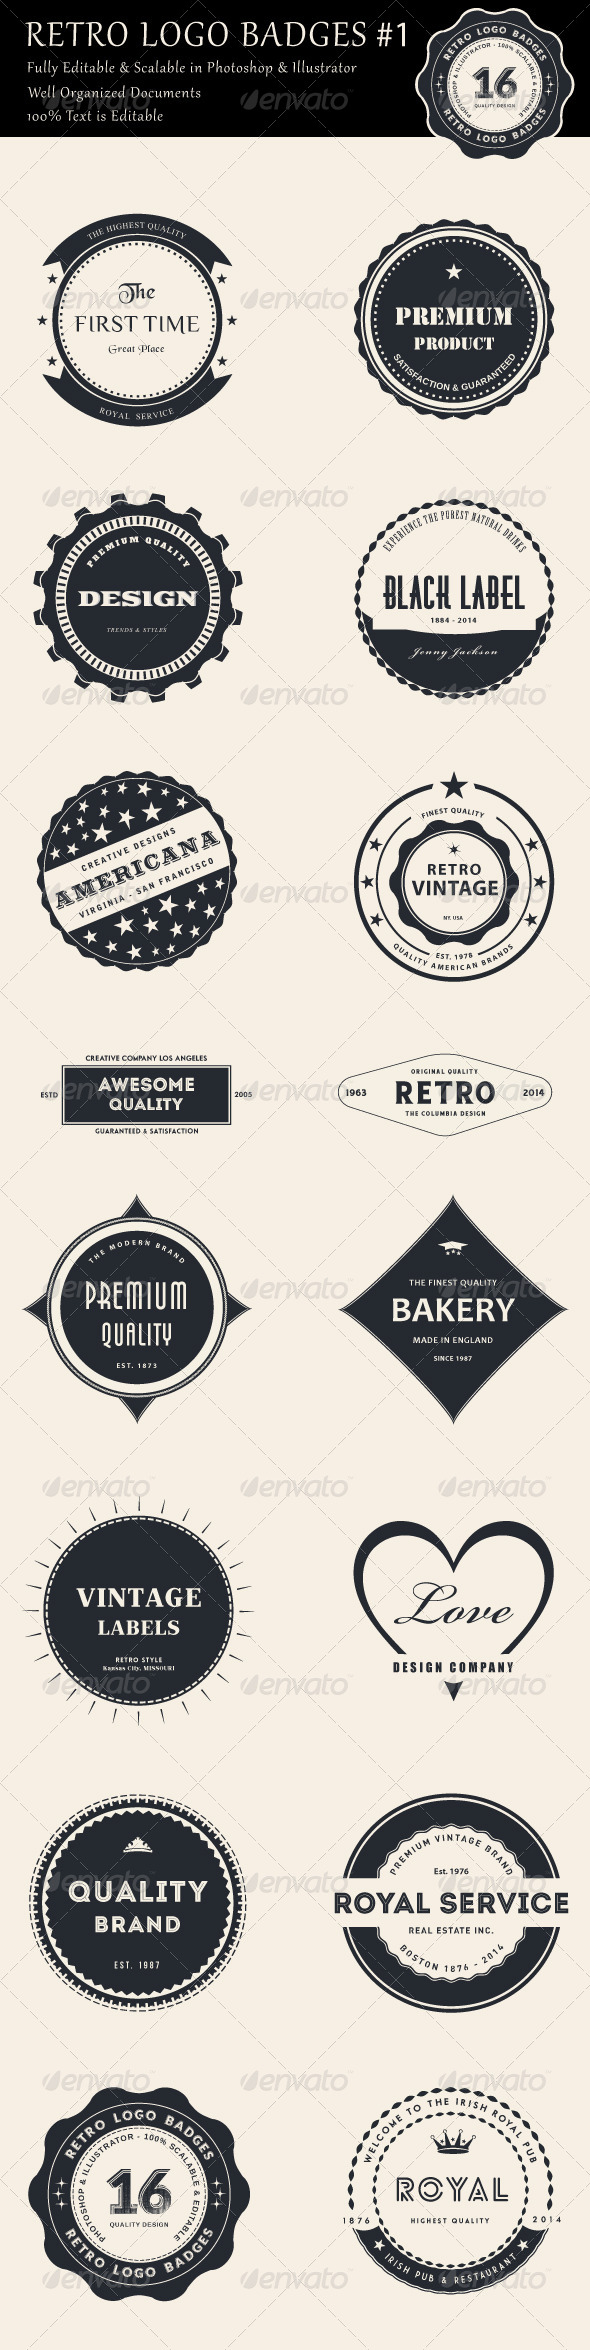 GraphicRiver 16 Retro Logo Badges #1 8275553